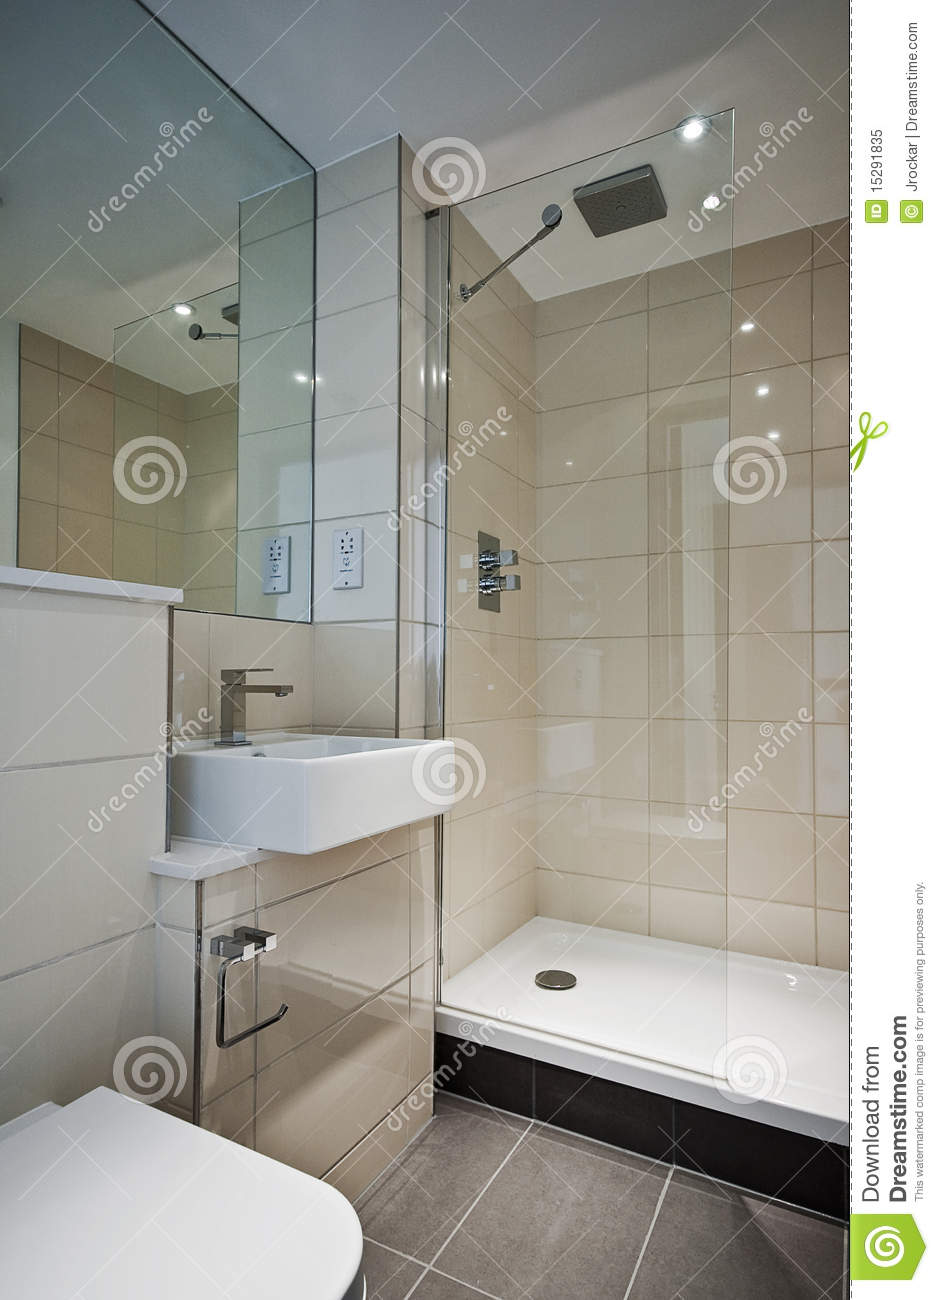 En Suite Bathroom Stock Photo 12207978